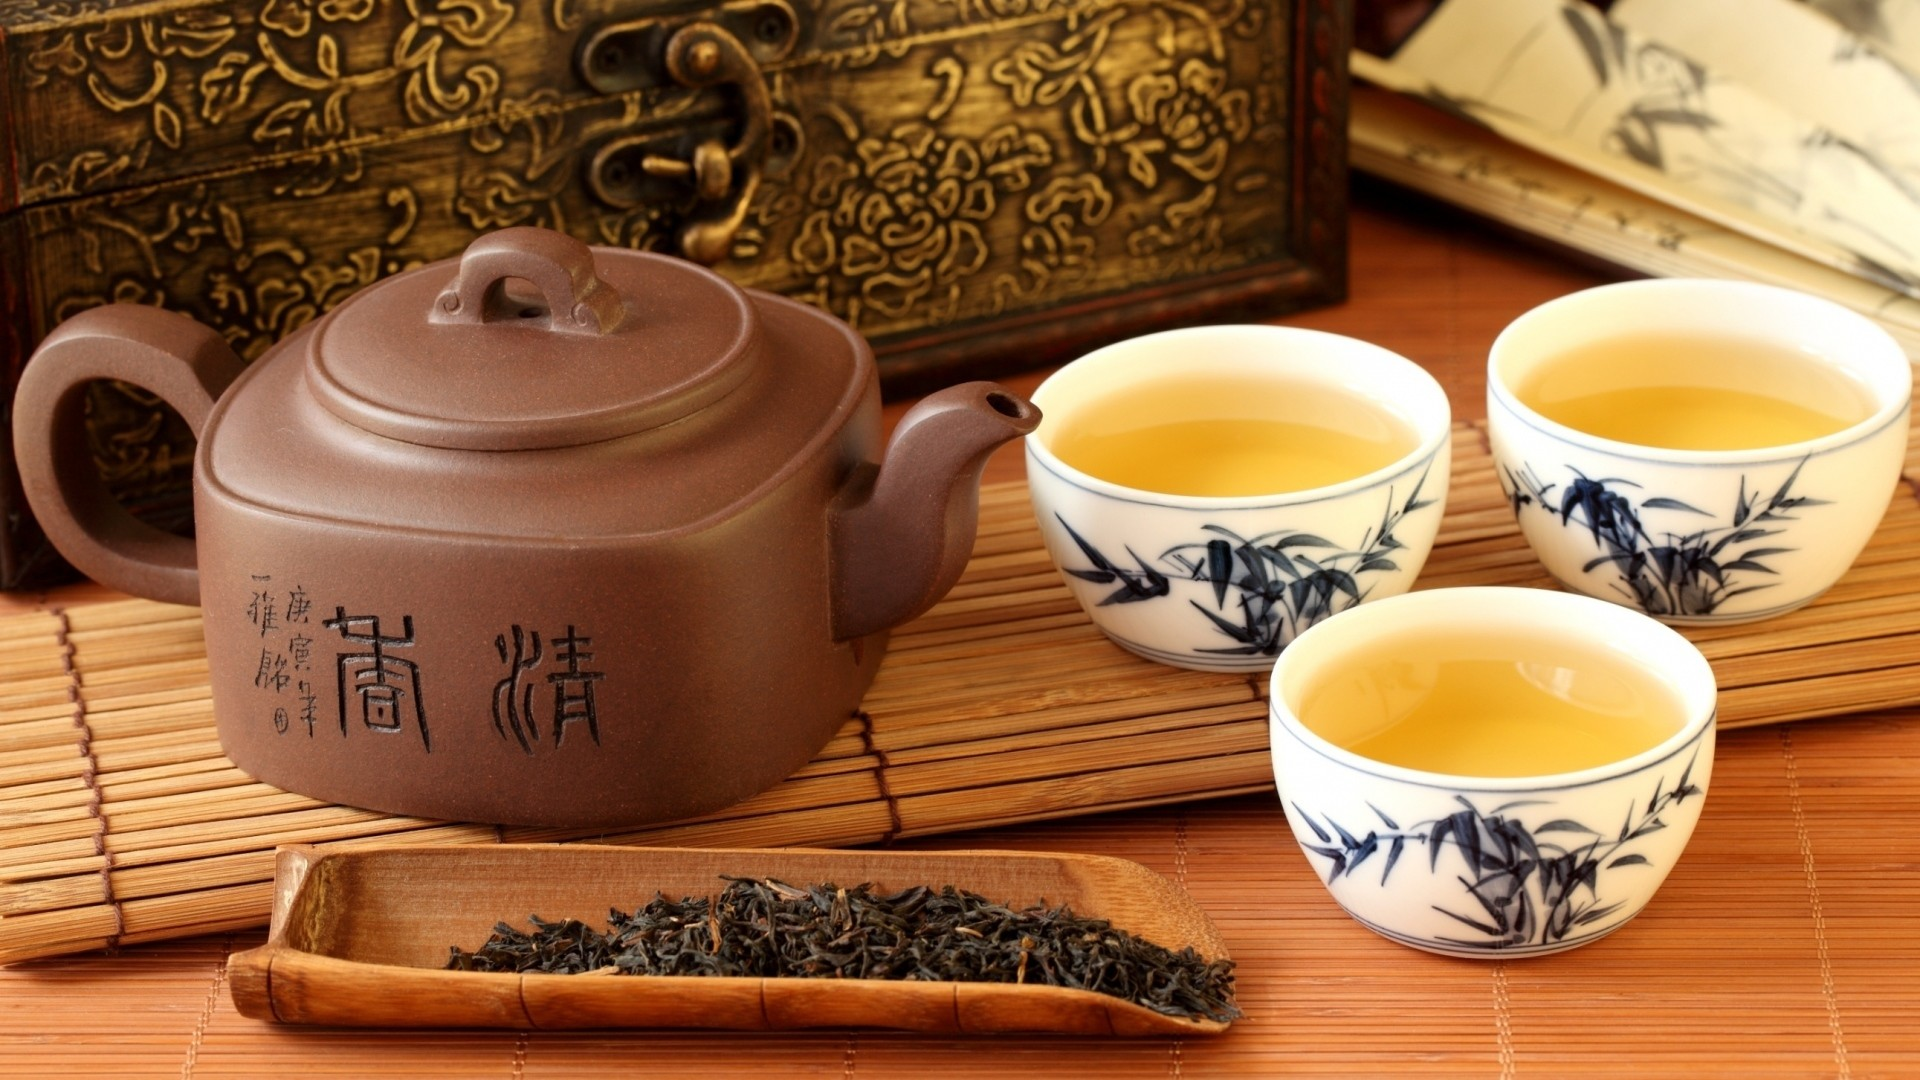 1920x1080  Wallpaper tea, teapot, tea leaves, service, chinese, hieroglyphs,  chest